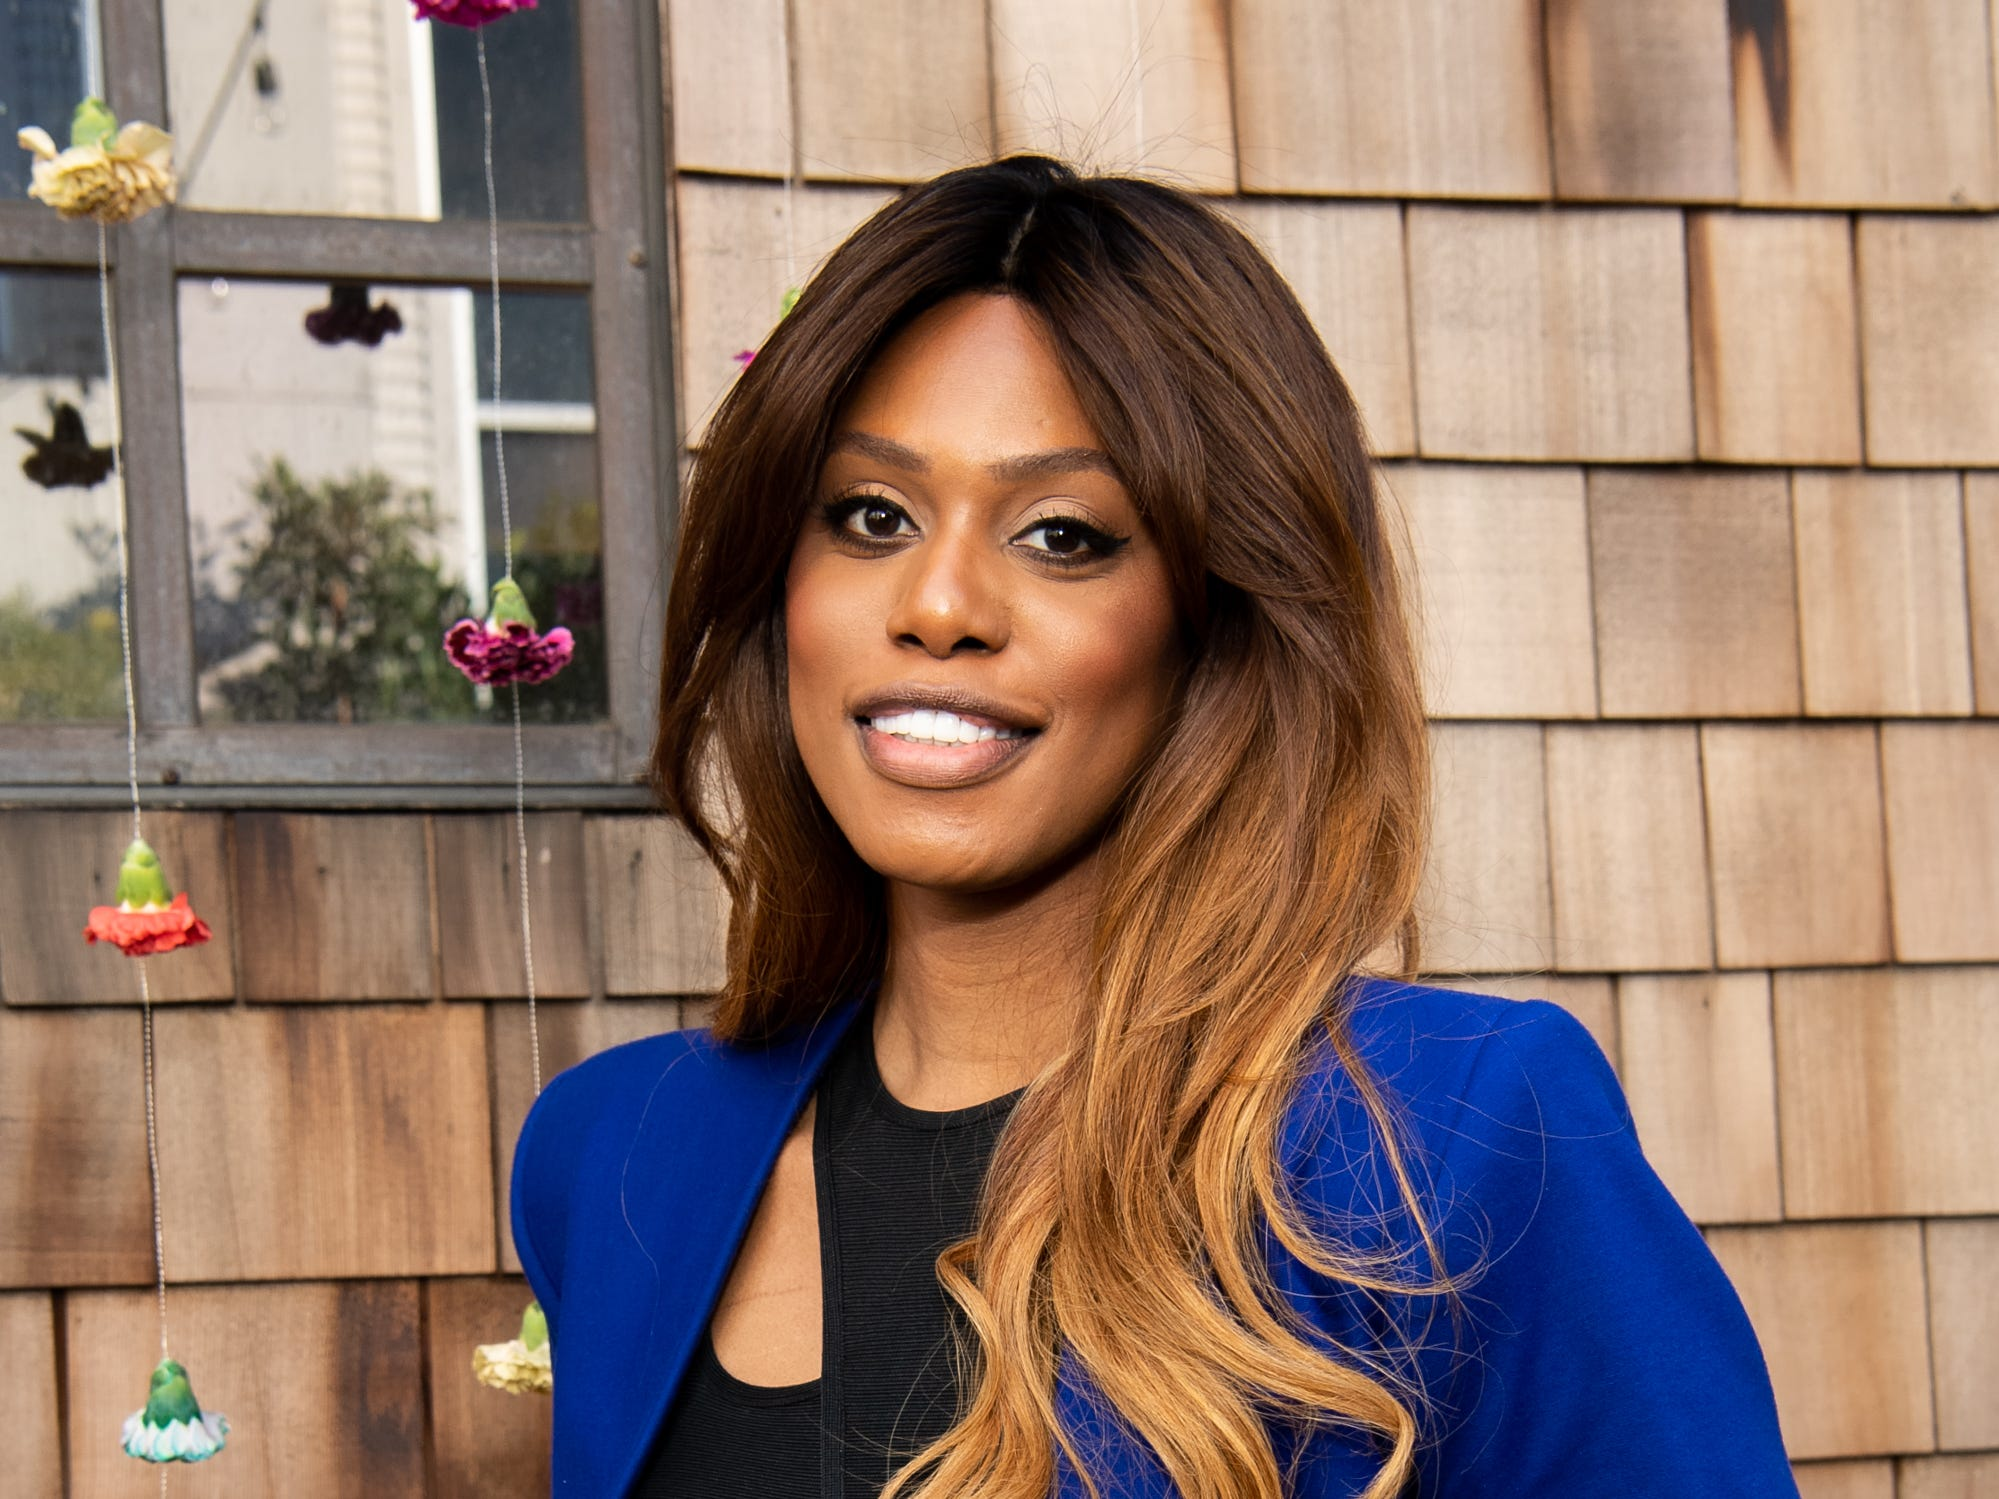 LOS ANGELES, CALIFORNIA - JANUARY 22: Laverne Cox attends the 3rd annual National Day of Racial Healing at Array on January 22, 2019 in Los Angeles, California. (Photo by Emma McIntyre/Getty Images) ORG XMIT: 775286570 ORIG FILE ID: 1098153760